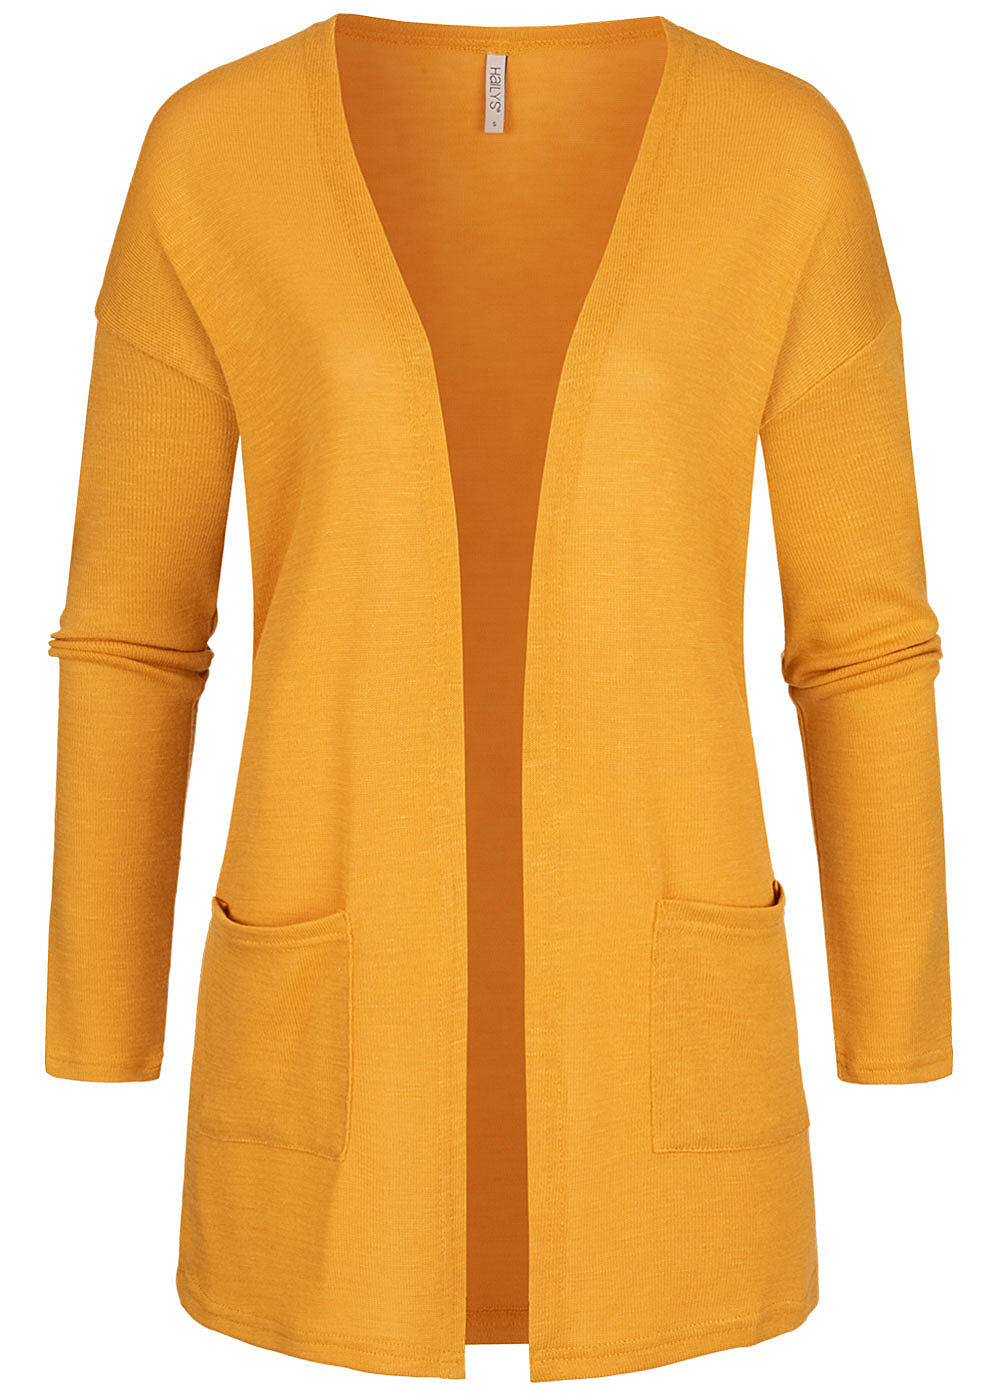 Hailys Damen Basic Cardigan 2-Pockets offener Schnitt golden gelb - Art.-Nr.: 20083861-M-YE